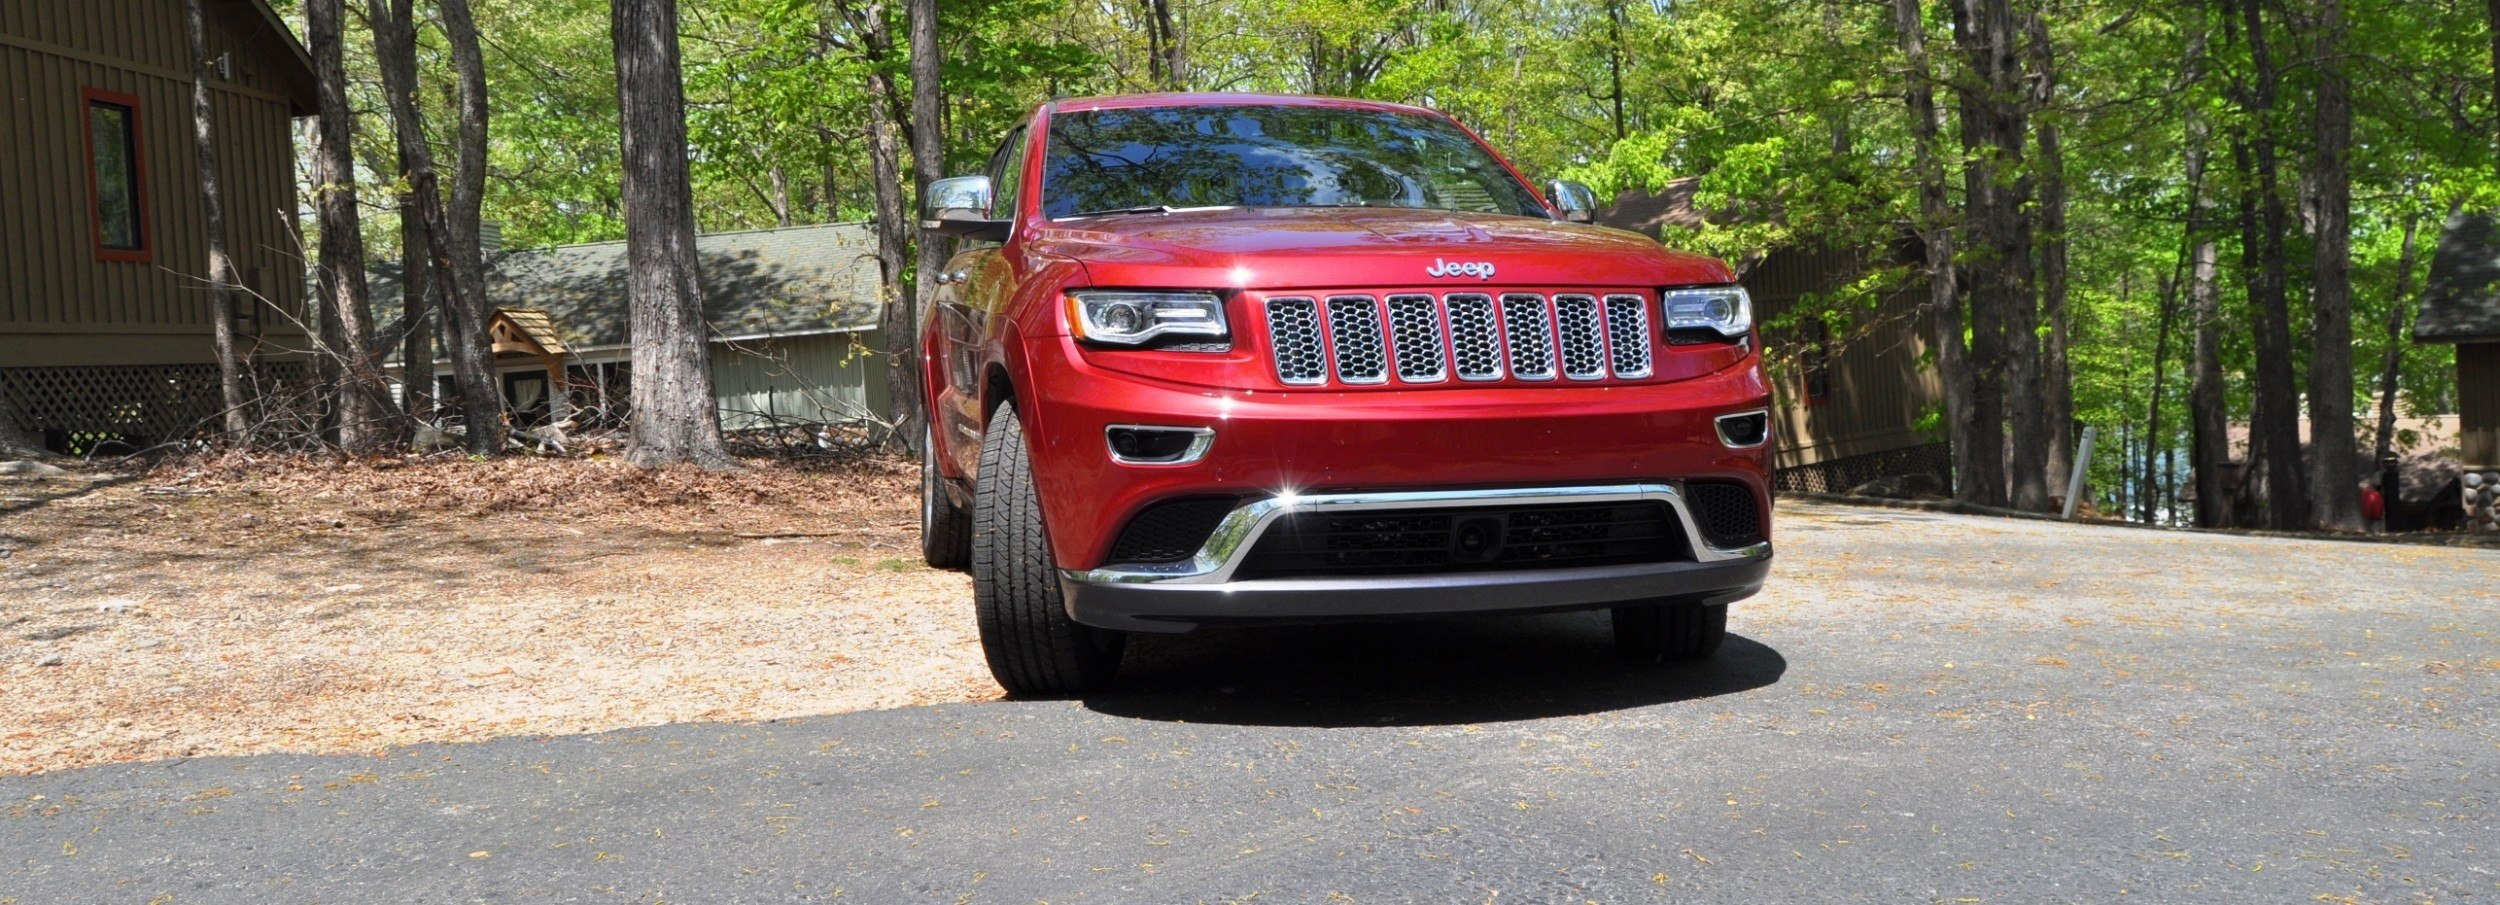 revs road test review 2014 jeep grand cherokee summit v6 2. Cars Review. Best American Auto & Cars Review